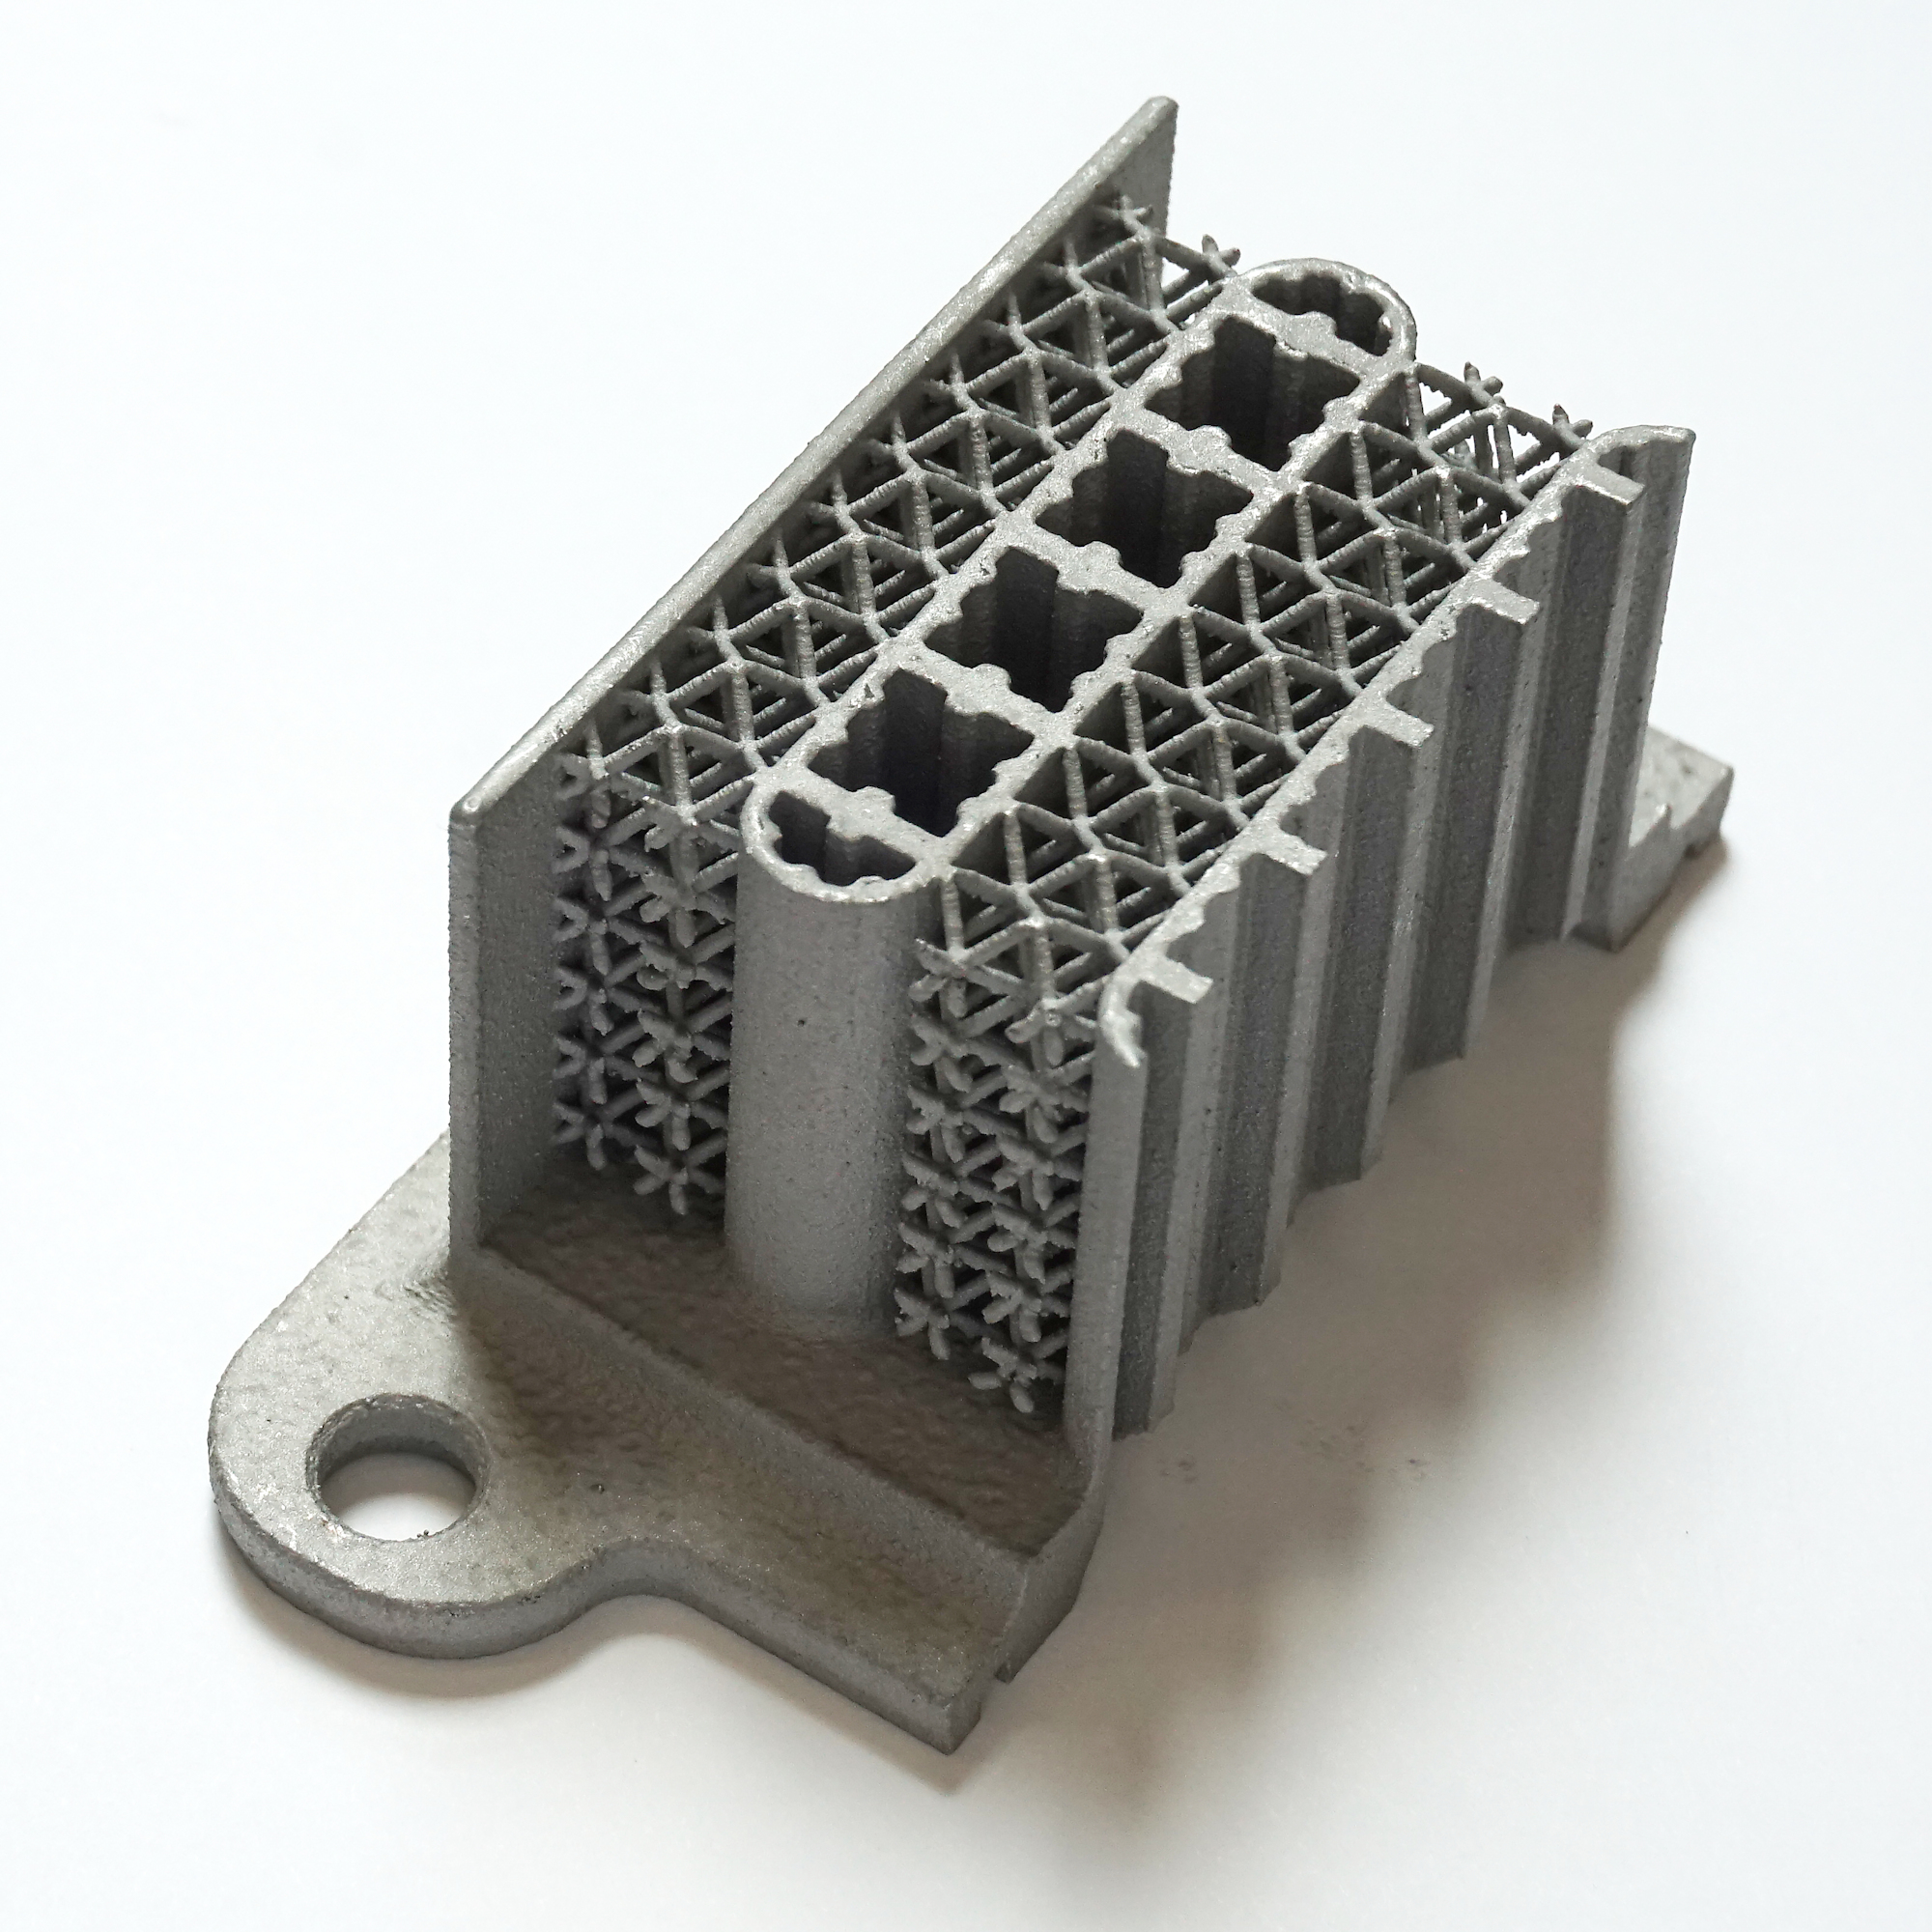 Powder Bed Fusion (PBF) and Bound Metal Deposition (BMD) Additive Manufacturing Processes